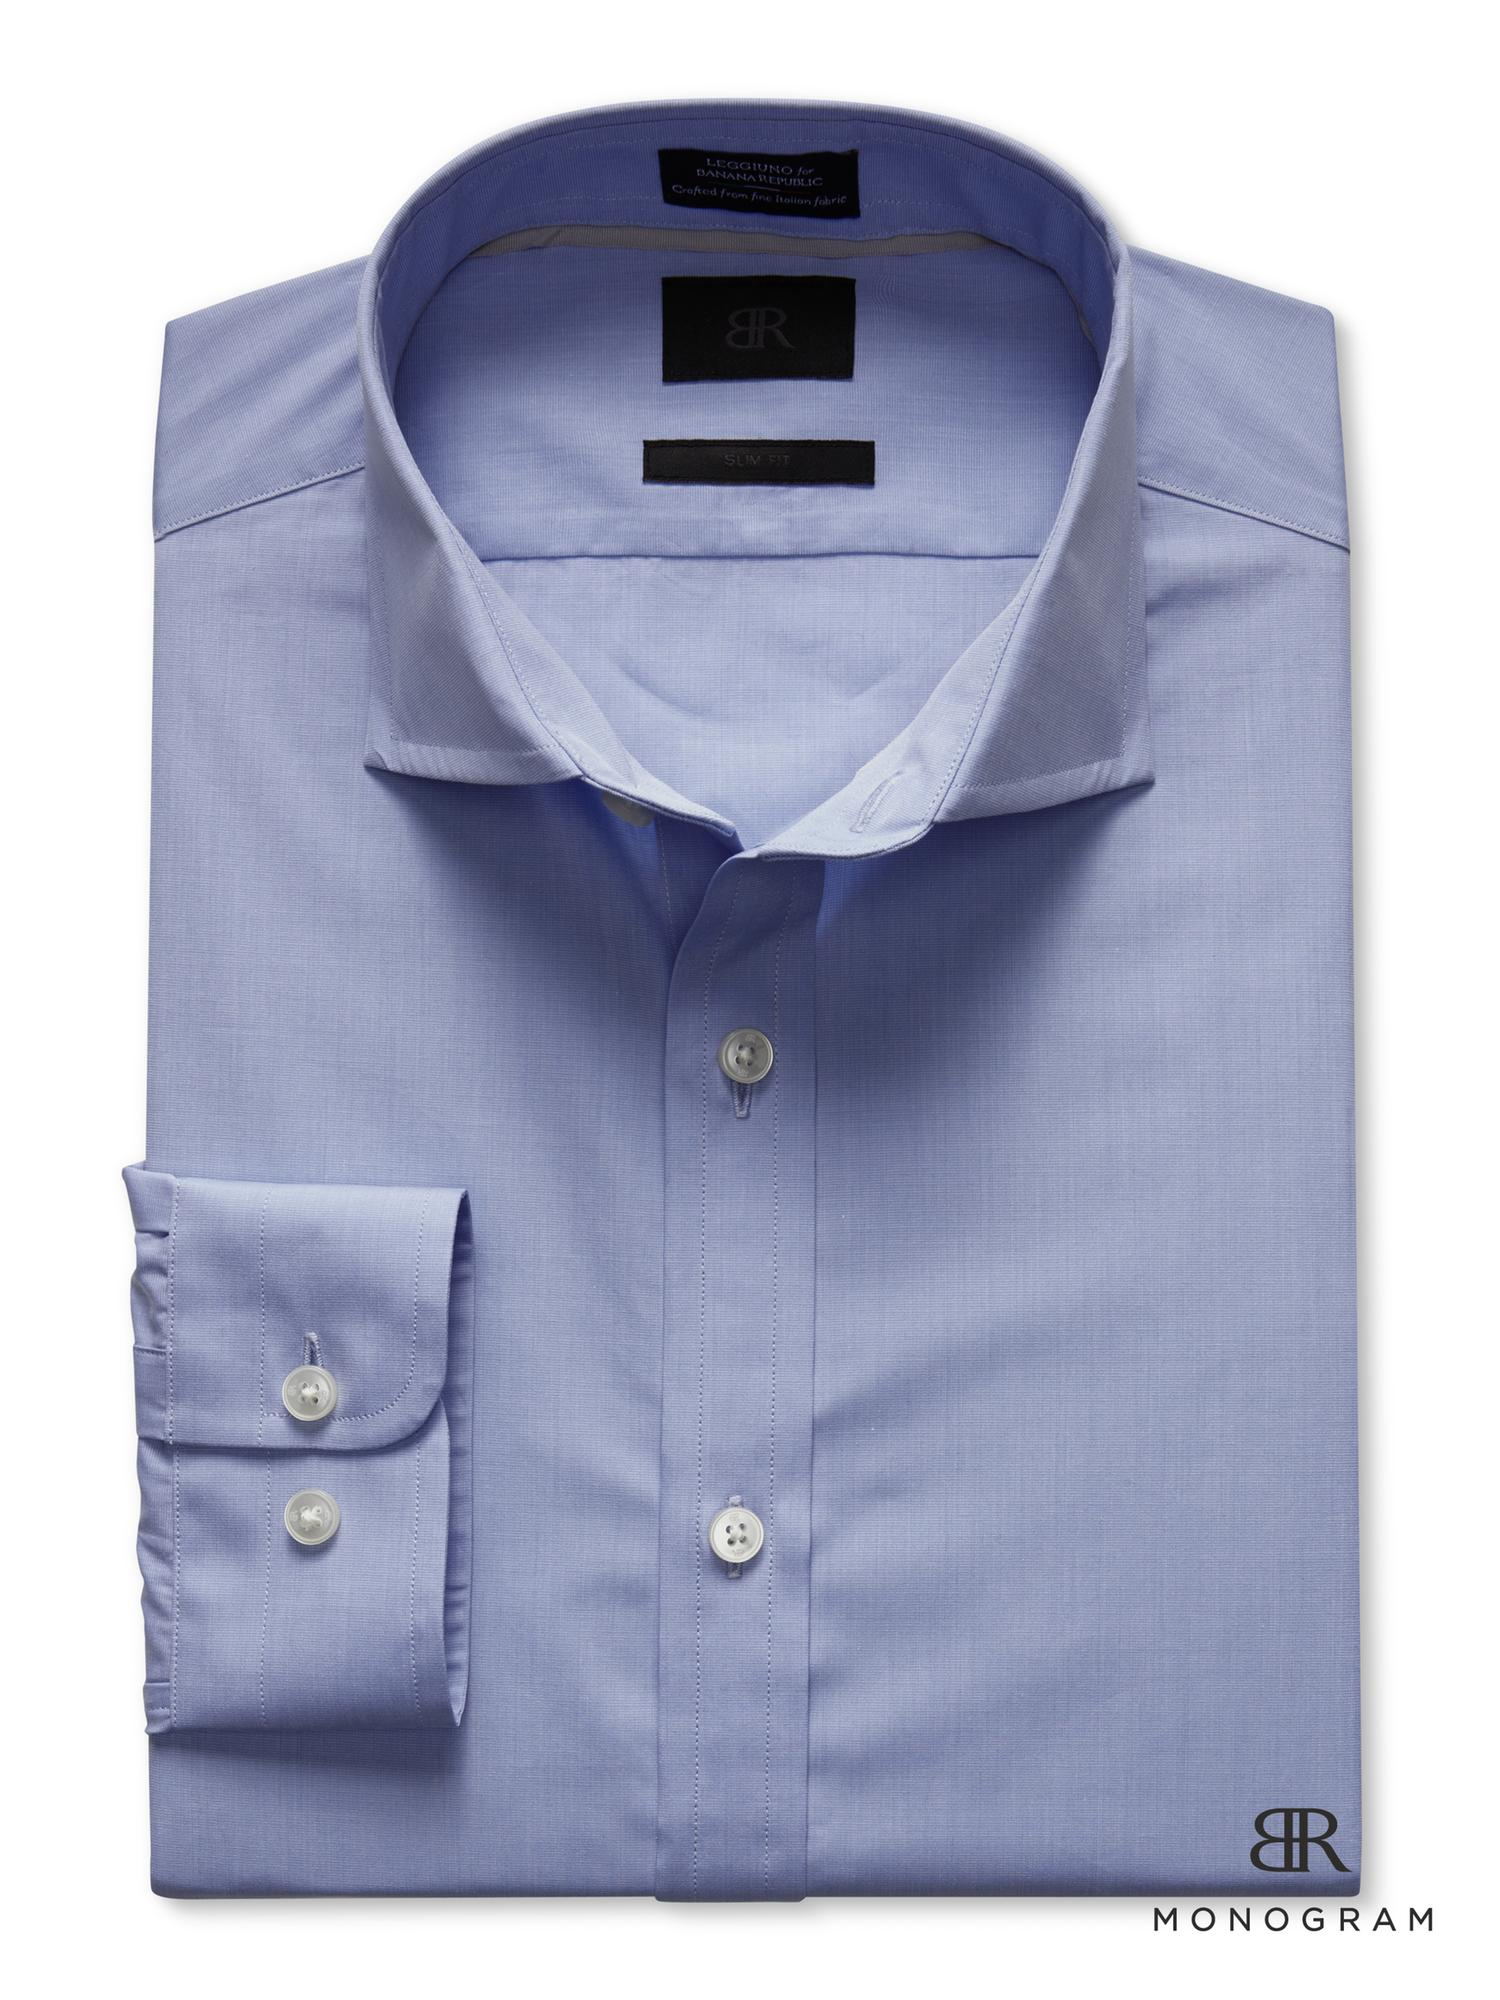 Banana republic br monogram solid dress shirt in blue for for Initials on dress shirts